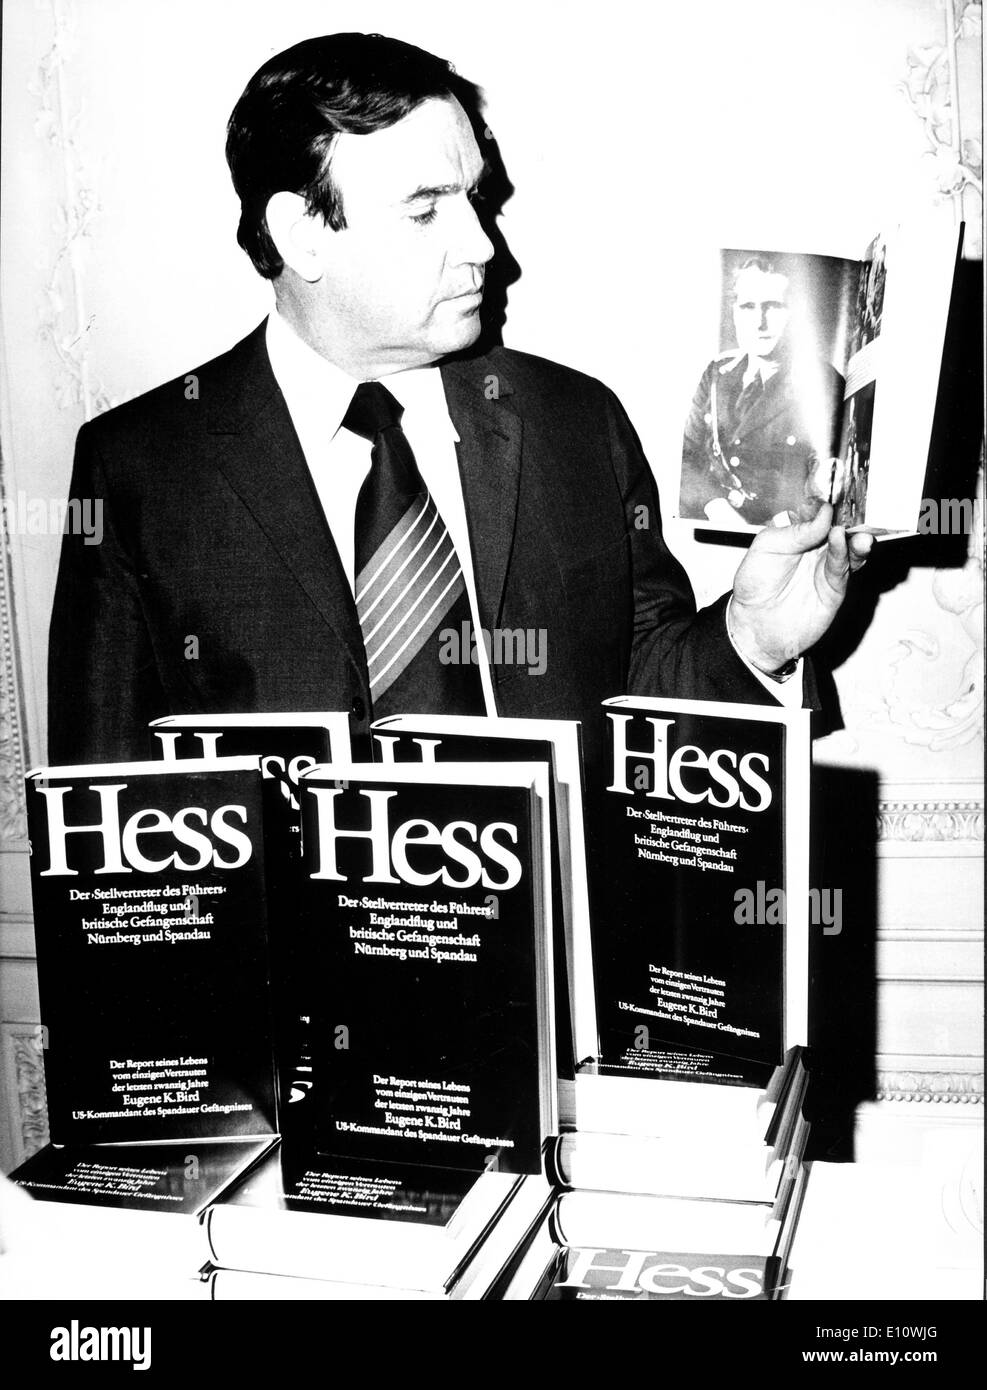 Author EUGENE K. BIRD presenting his book about the life of Rudolf Hess in Berlin Germany - Stock Image